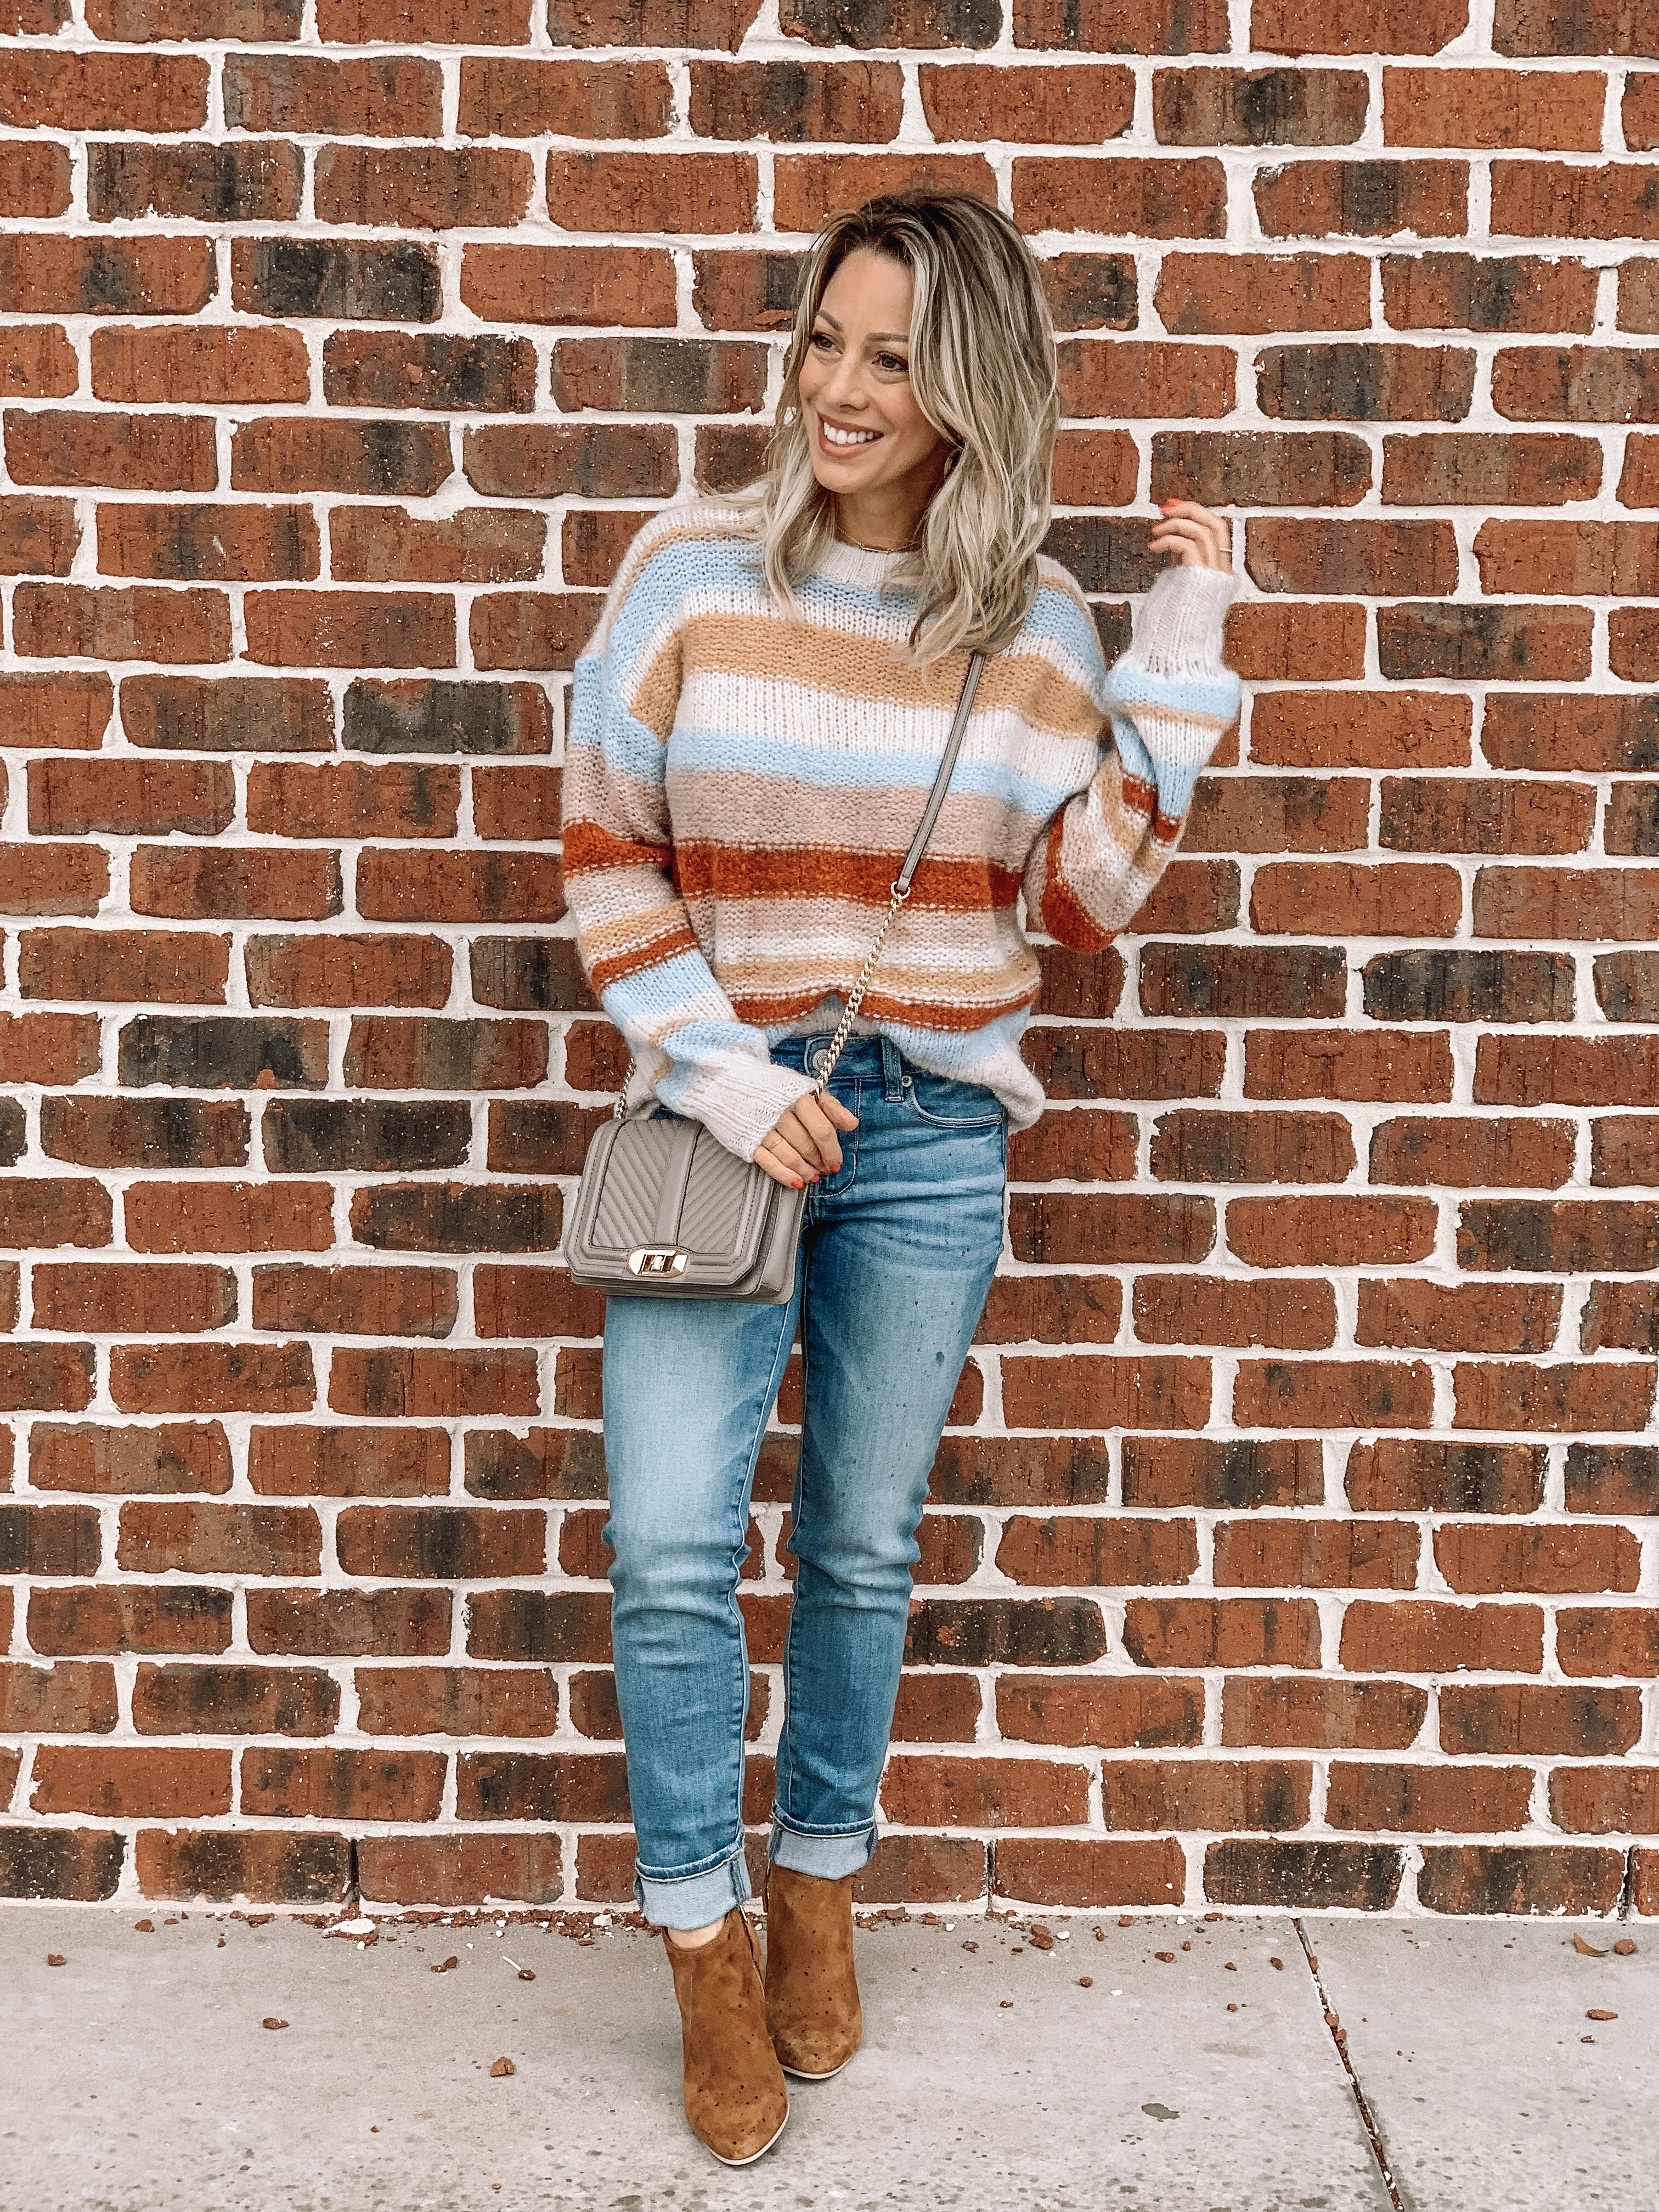 Jeans and striped sweater with booties